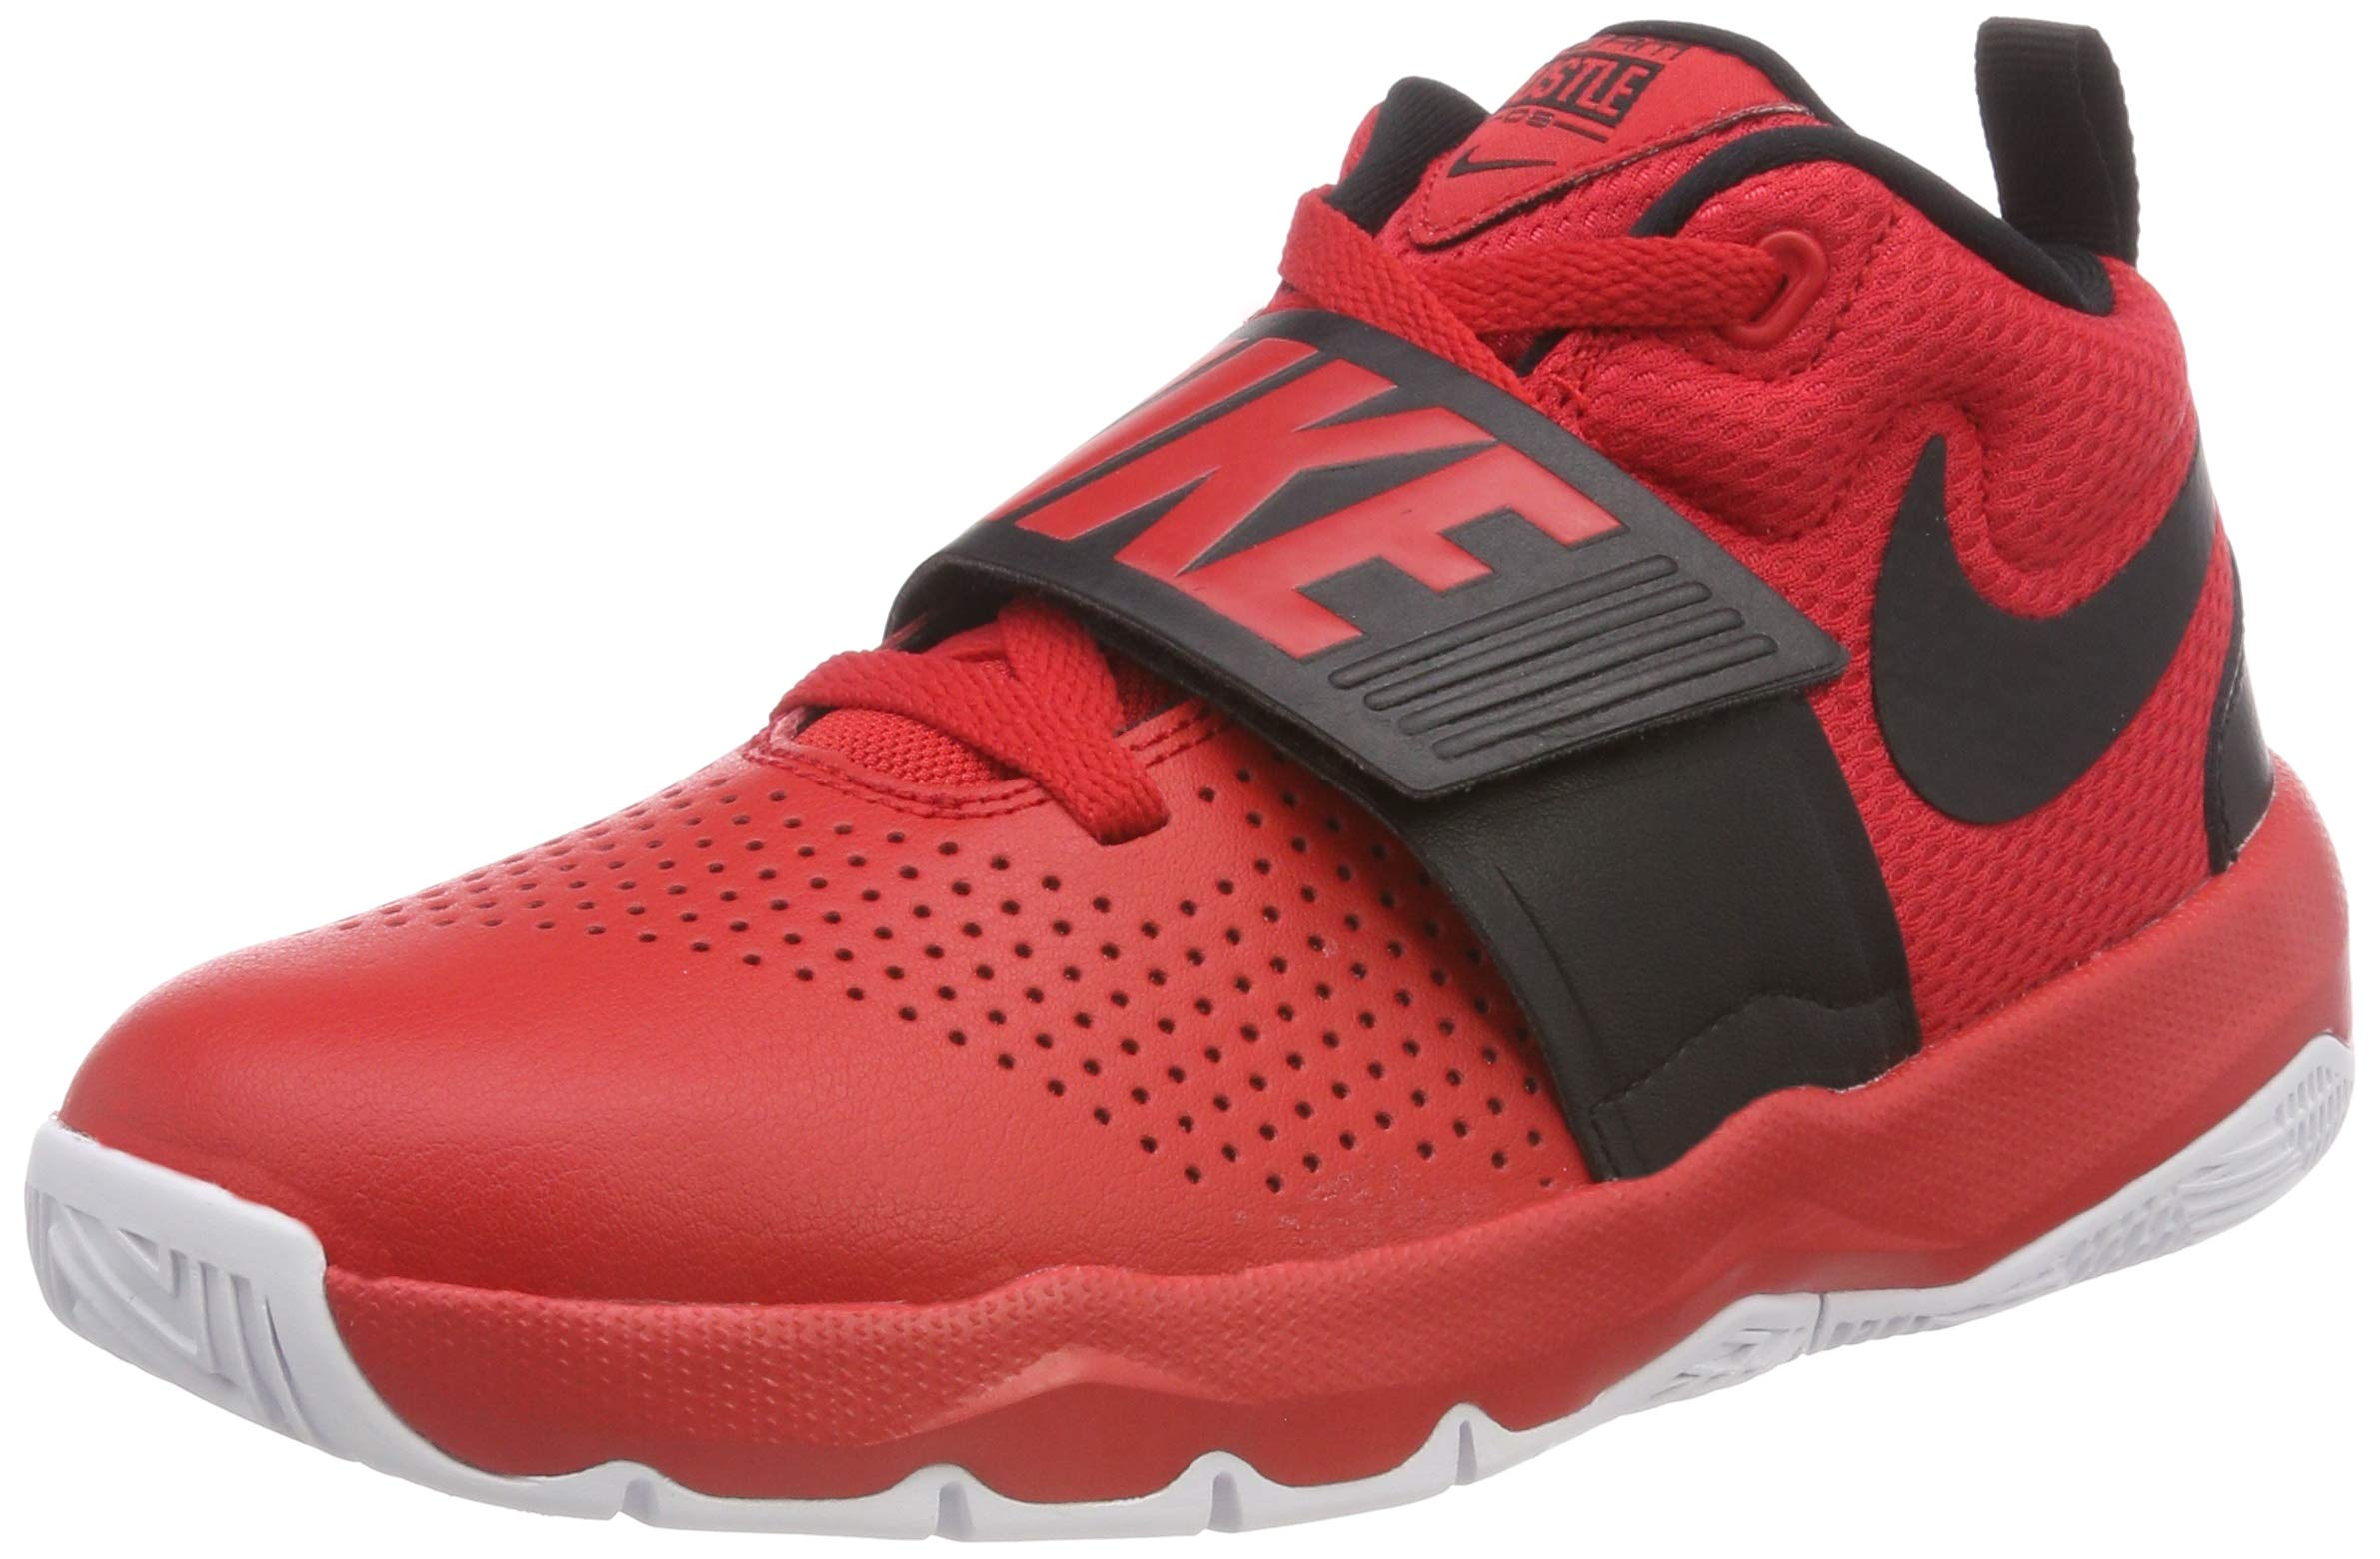 pretty nice 53e74 8afc9 Galleon - NIKE Boy s Team Hustle D 8 (GS) Basketball Shoe University Red  Black White Size 6 M US